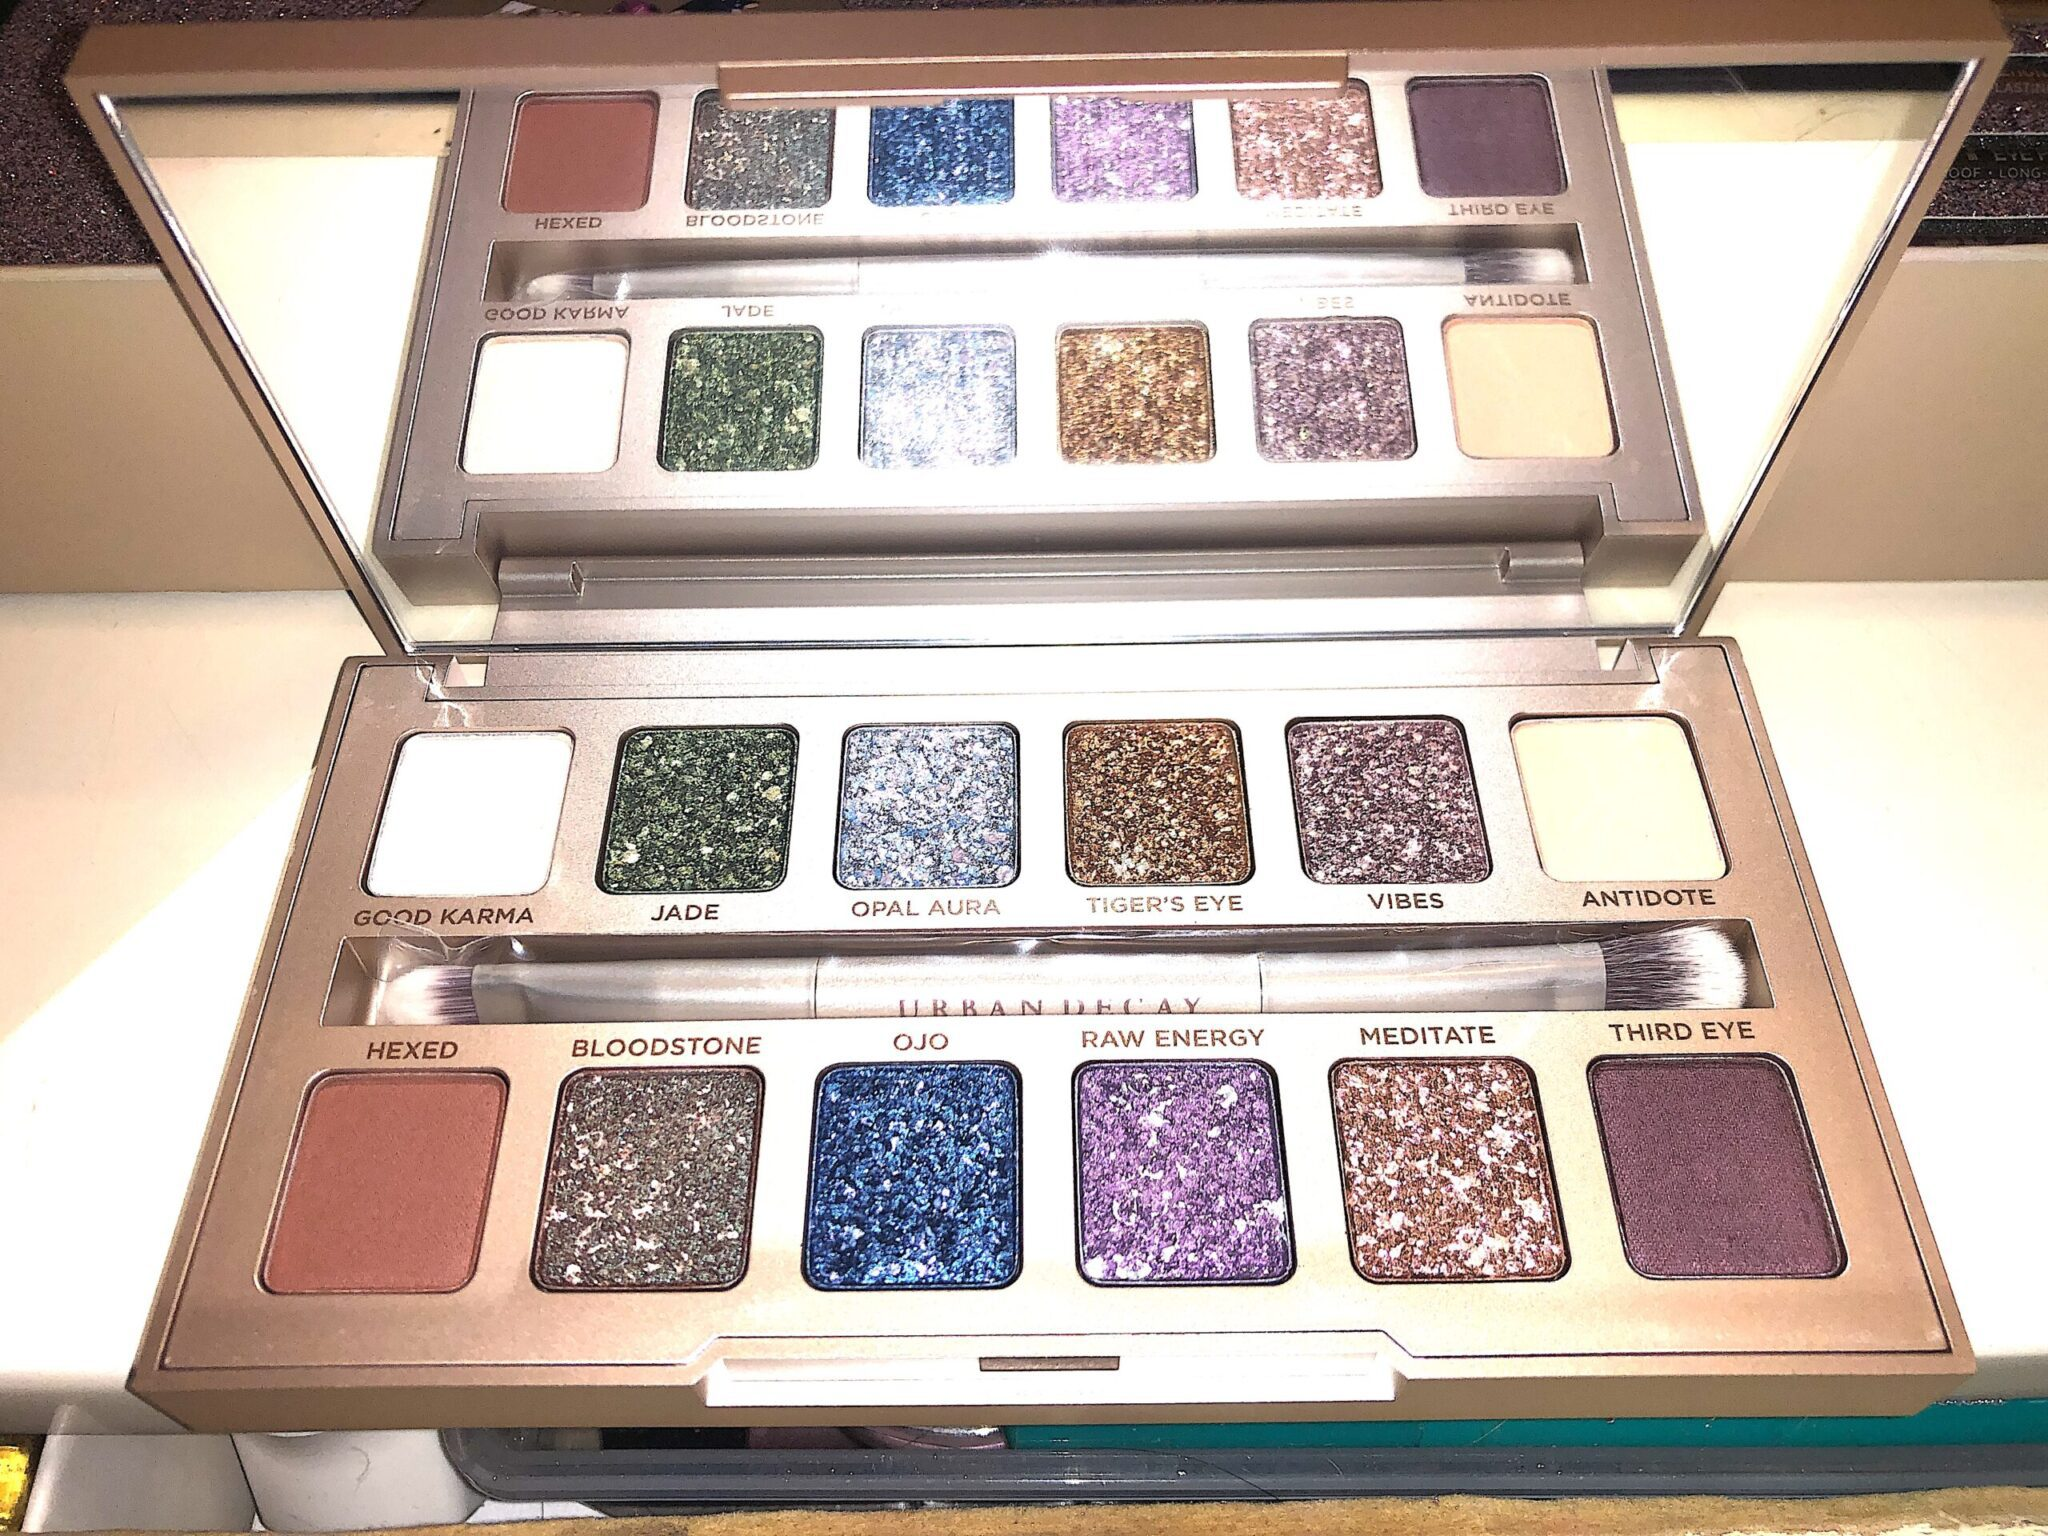 INSIDE THE STONED VIBES EYESHADOW PALETTE